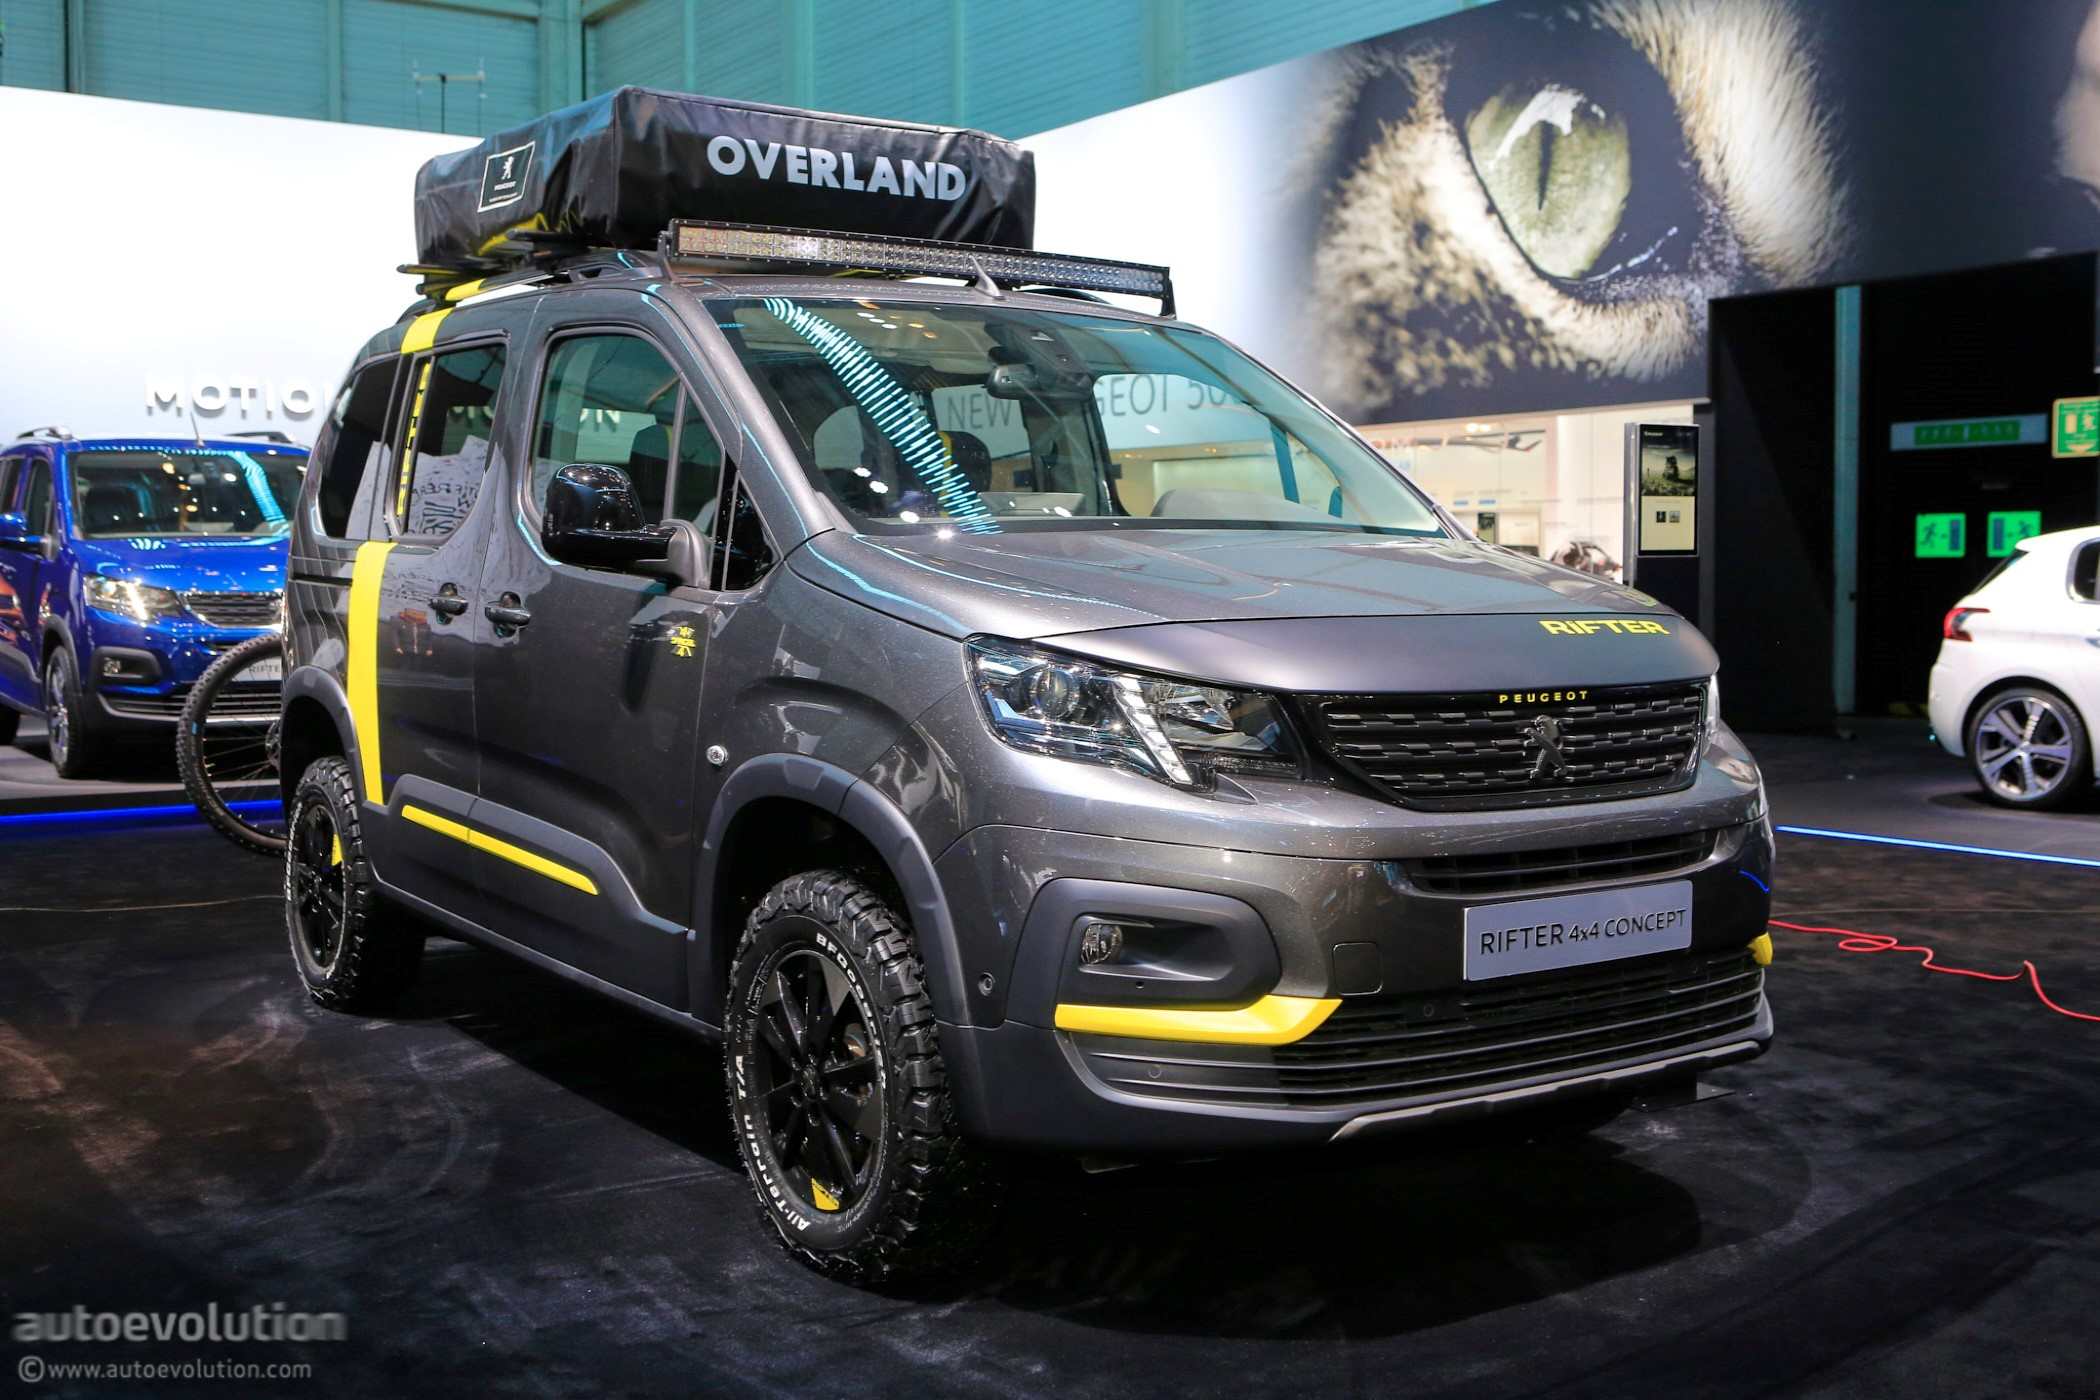 4x4 Concept Keeps The 2018 Peugeot Rifter Company In ...